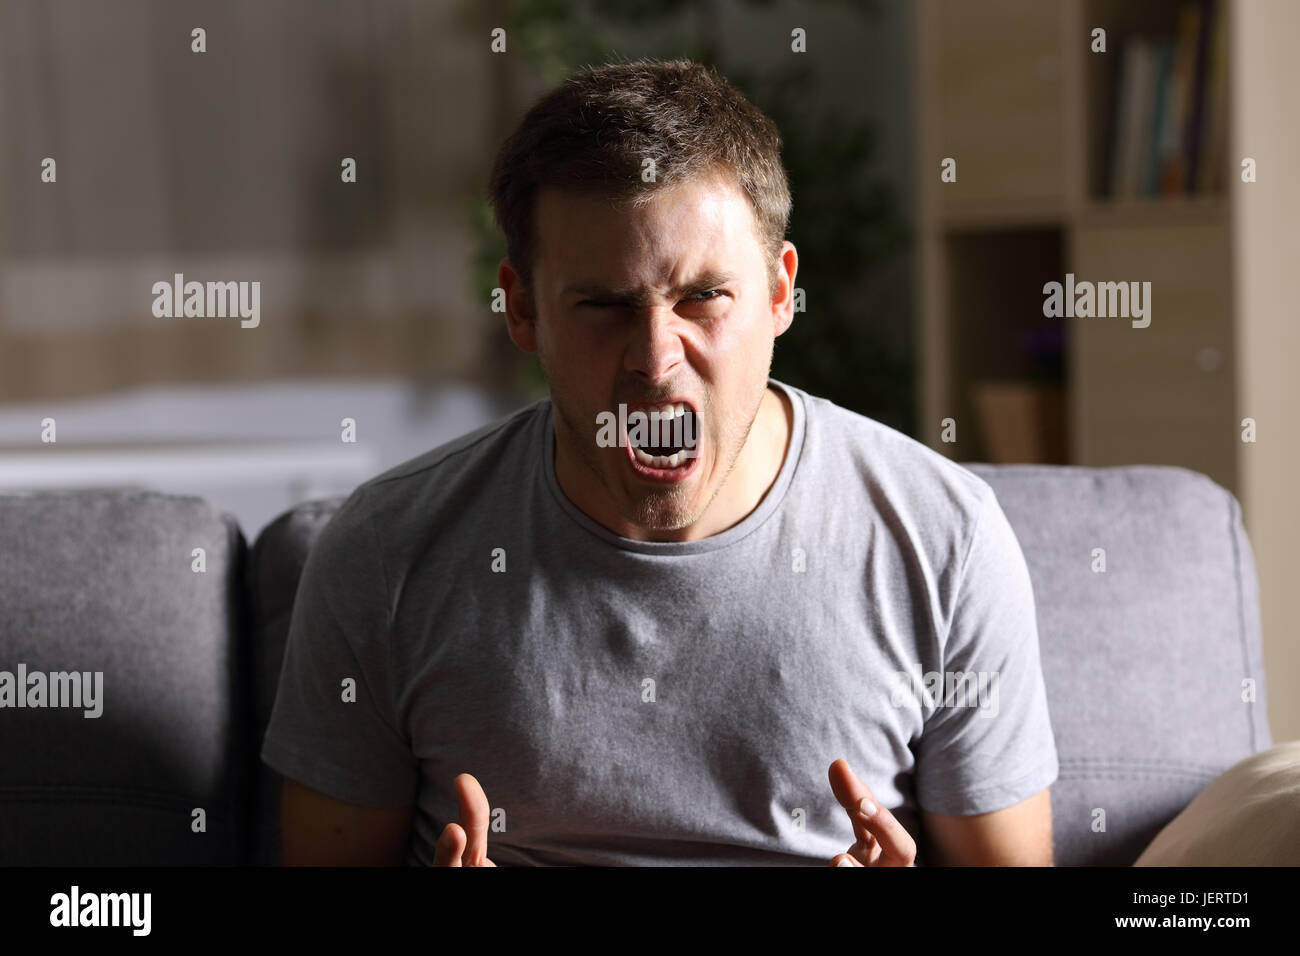 Casual furious man shouting and looking at you sitting on a sofa at home with a dark light in the background Stock Photo